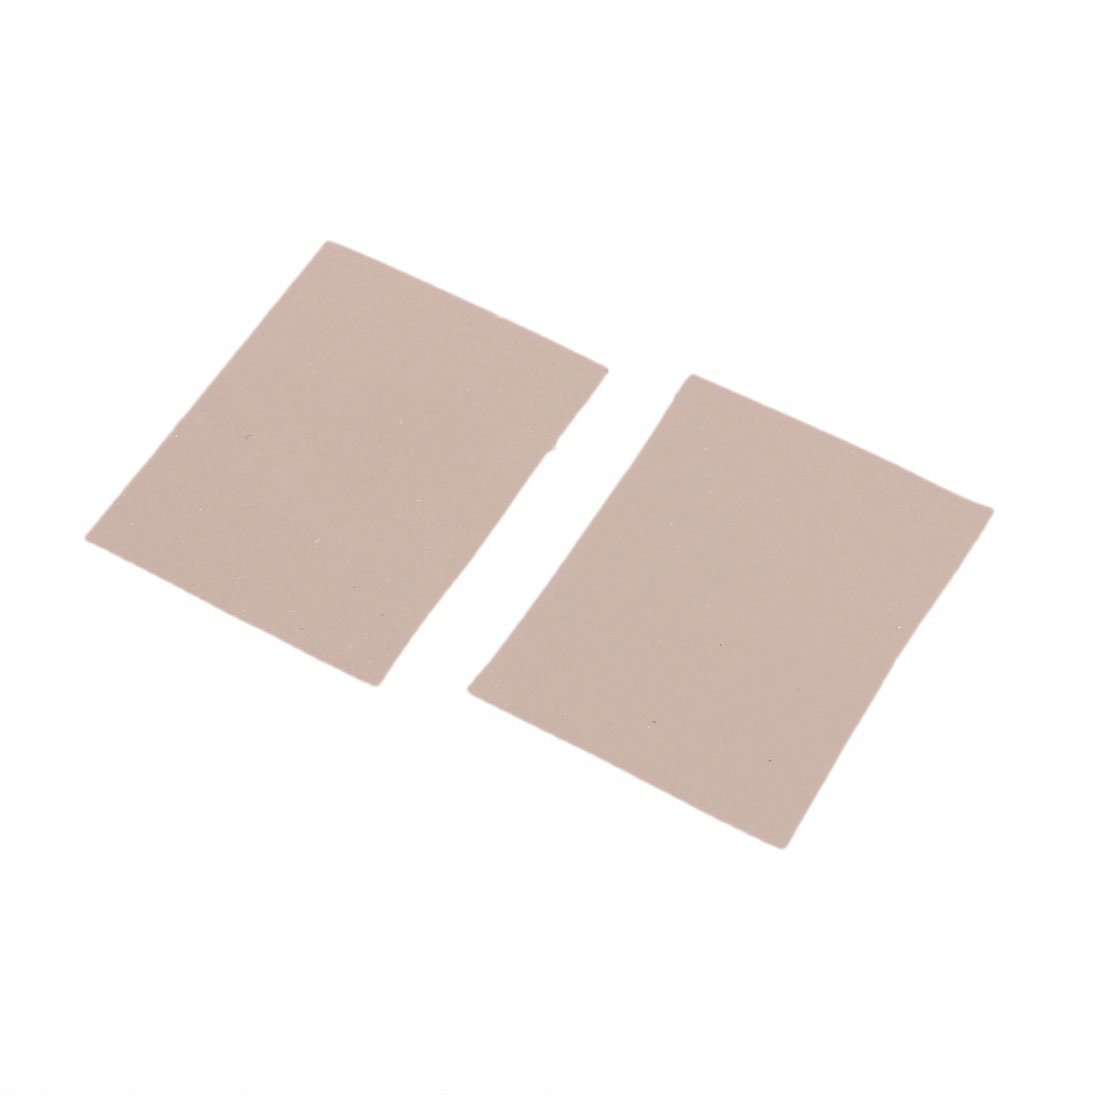 DealMux 1000 Pcs Silicone Thermal Heatsink Insulator Pads 0.3 X 20 x 25mm Gray by DealMux